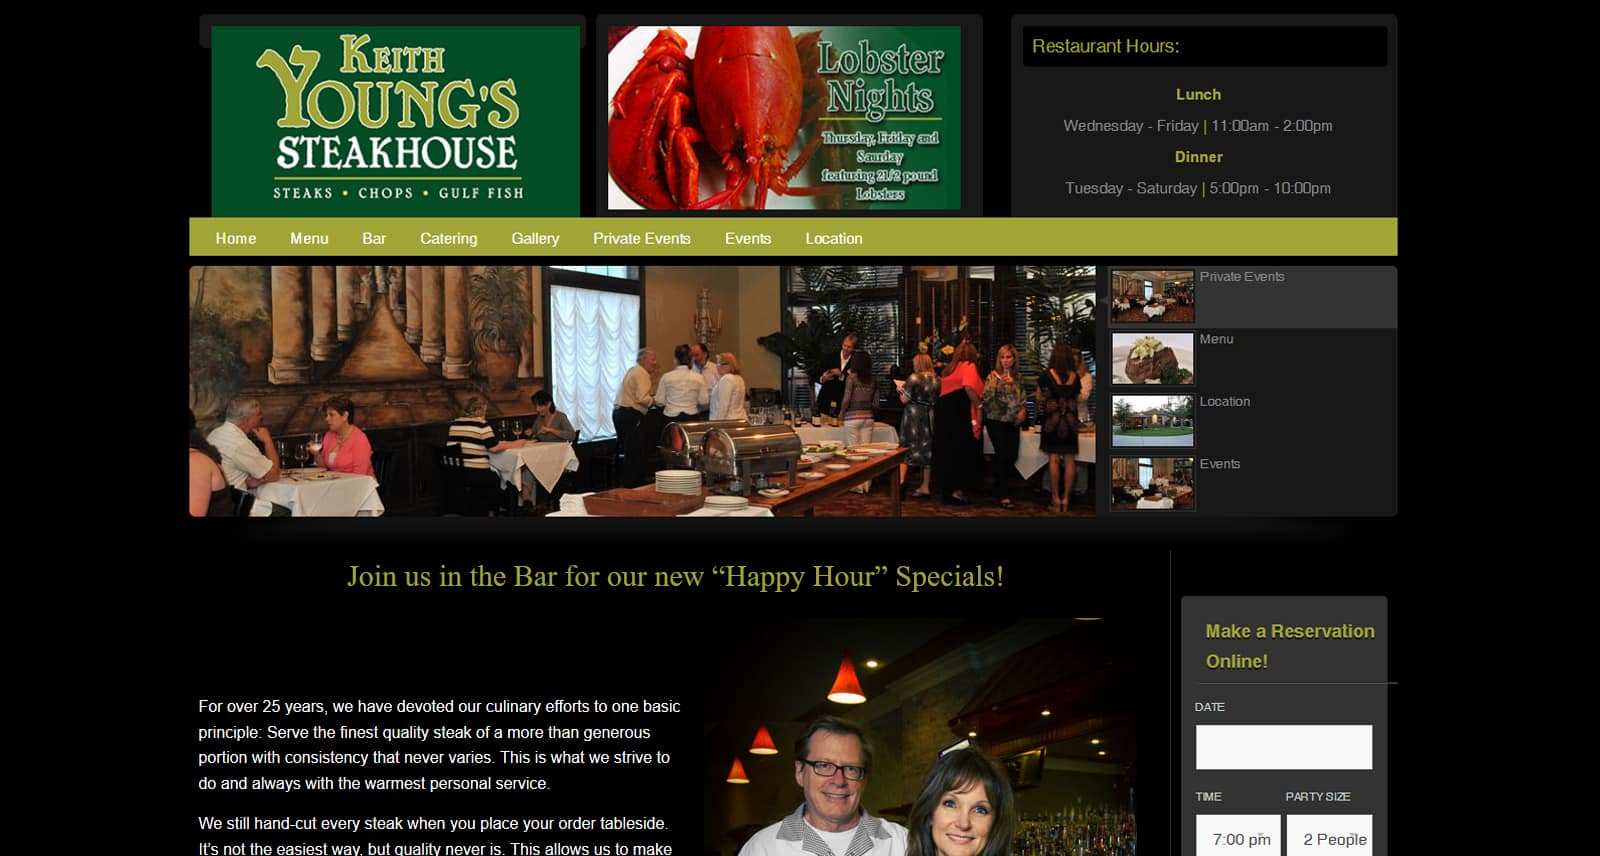 Keith Young's Steakhouse Website Before